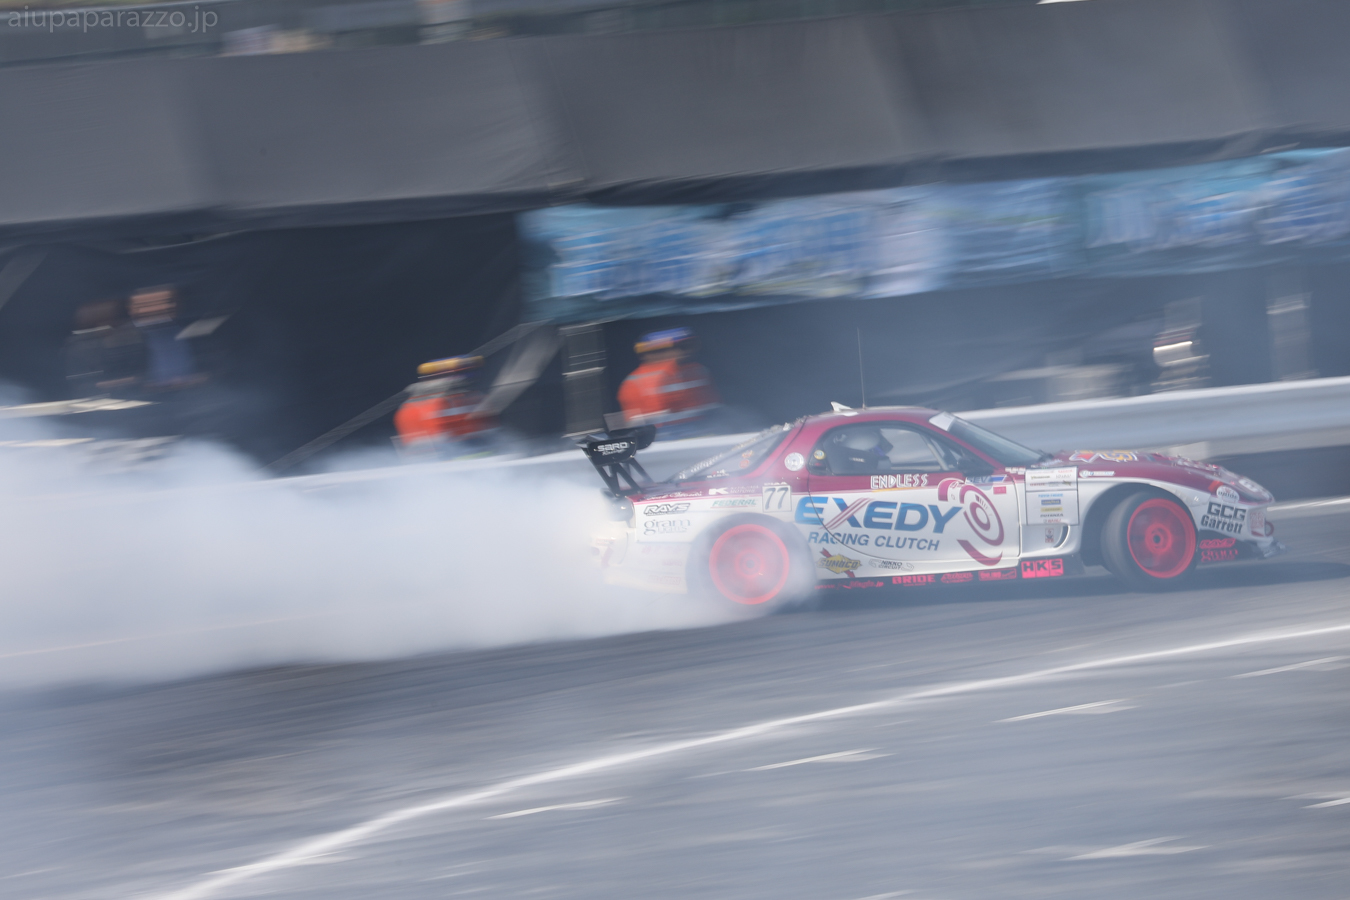 d1gp_tan2016lap3-25.jpg